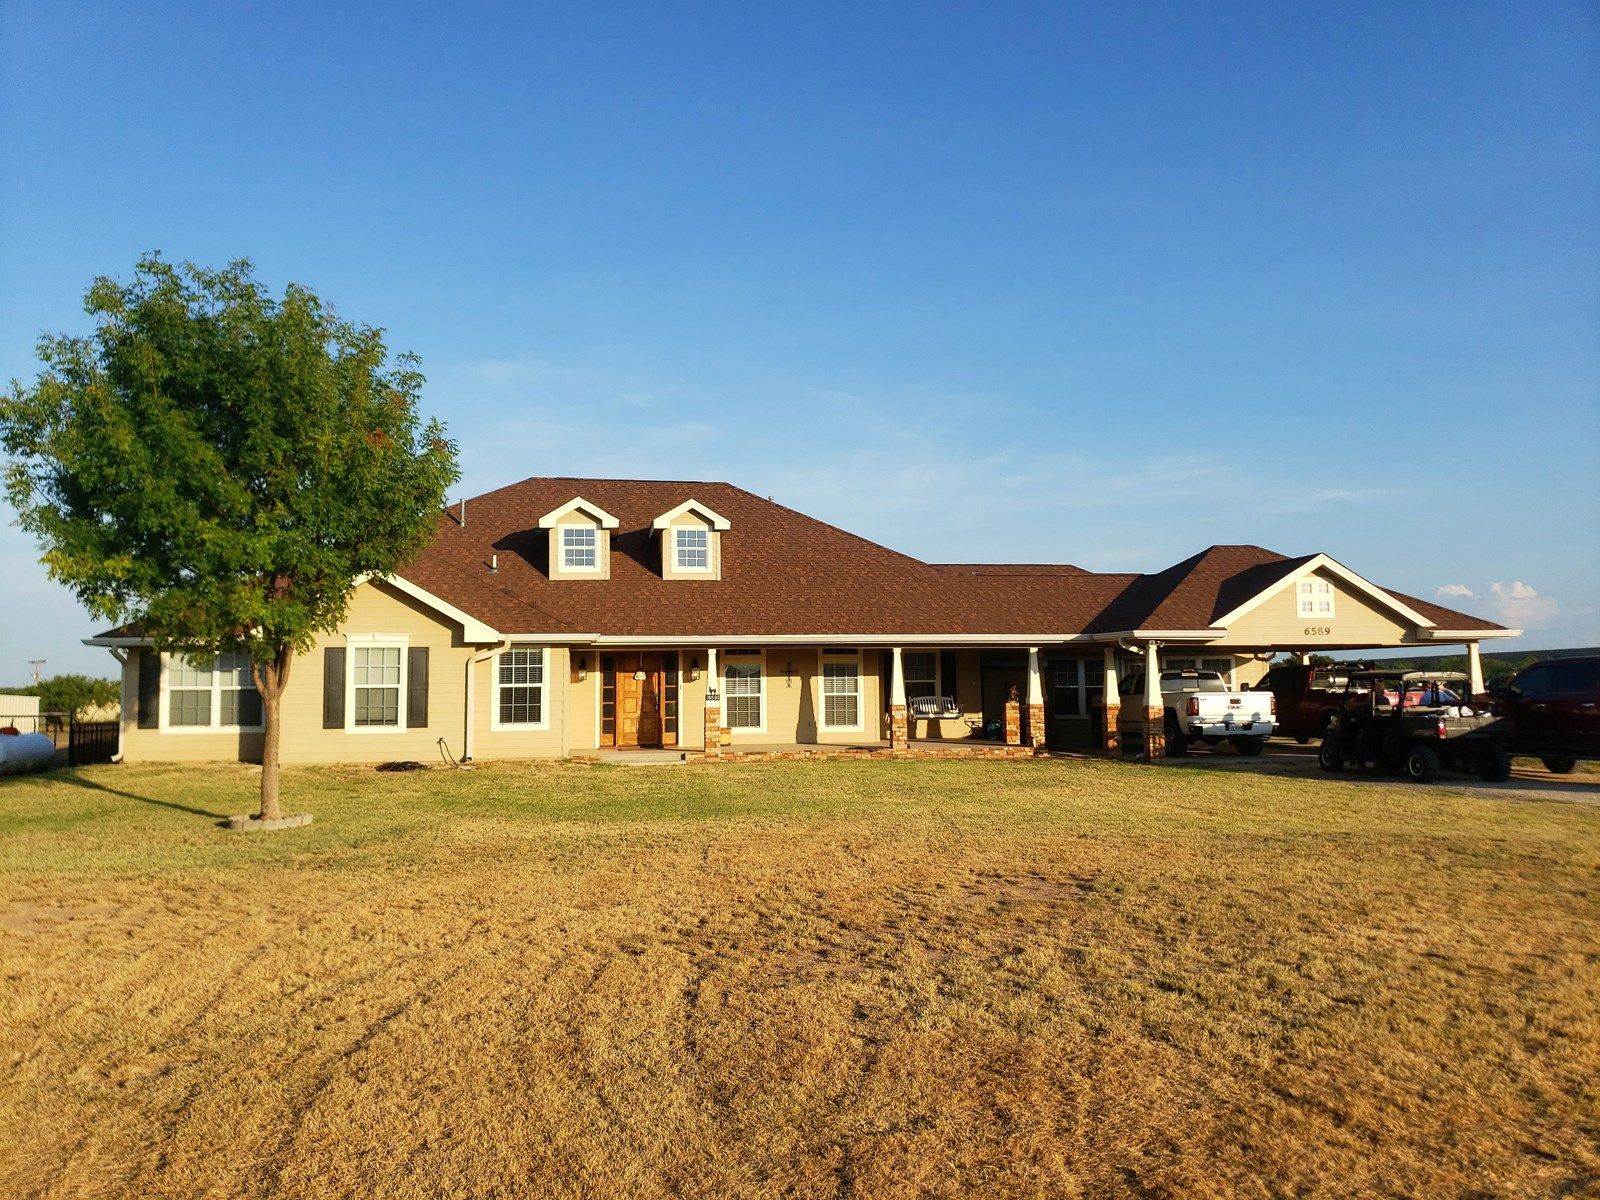 Country Home with land in San Angelo, Tx outside city limits